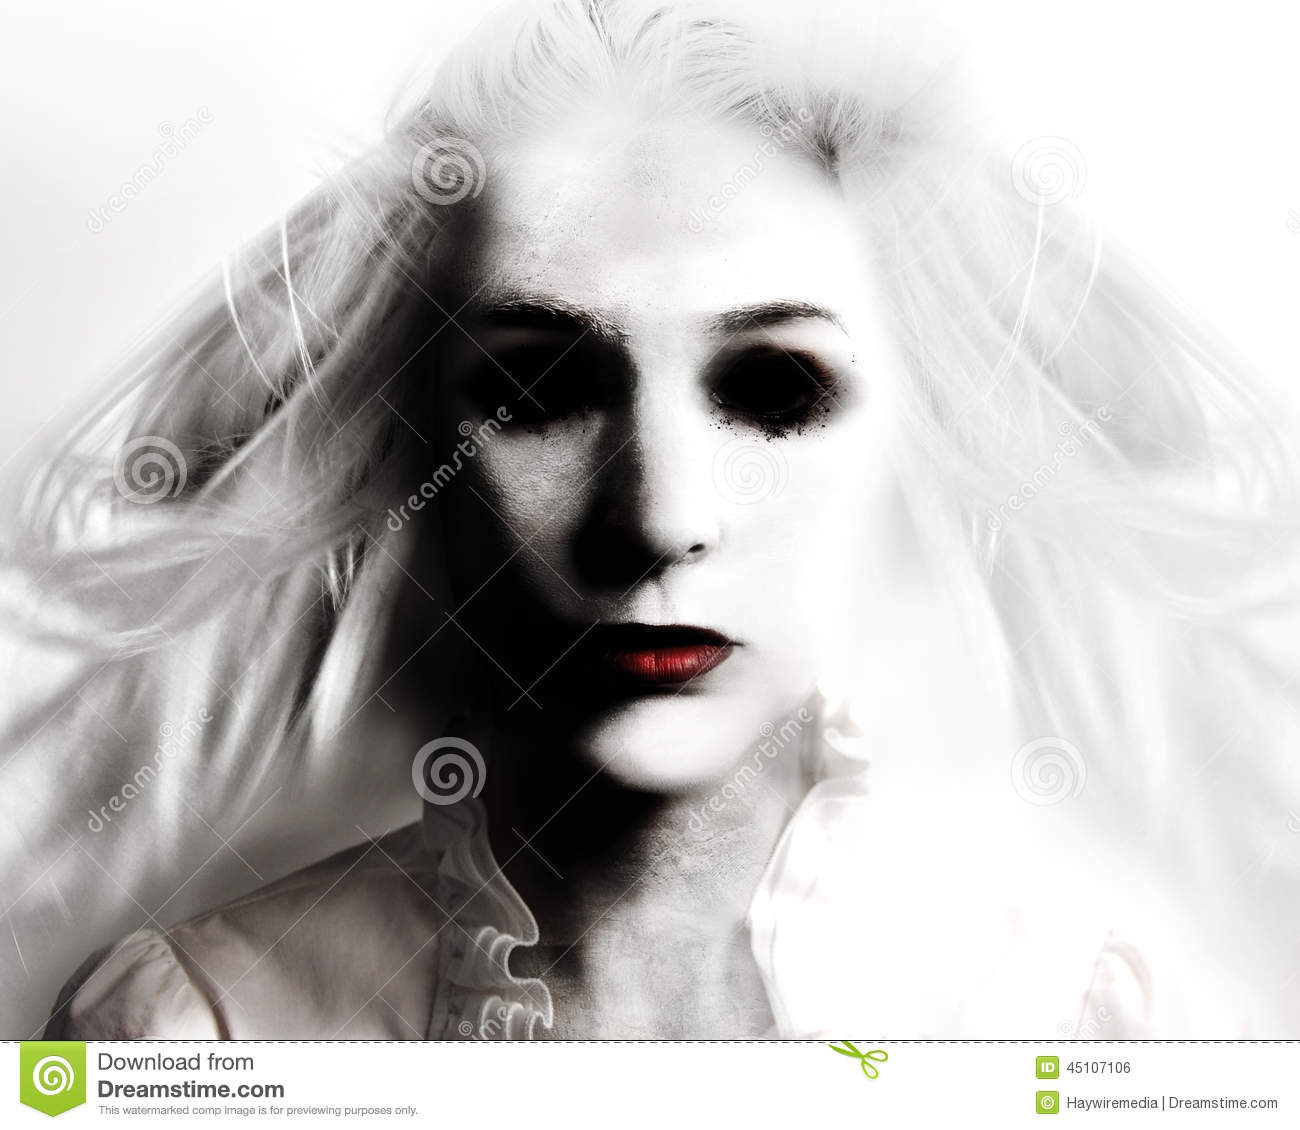 Scary Evil Ghost Woman in White